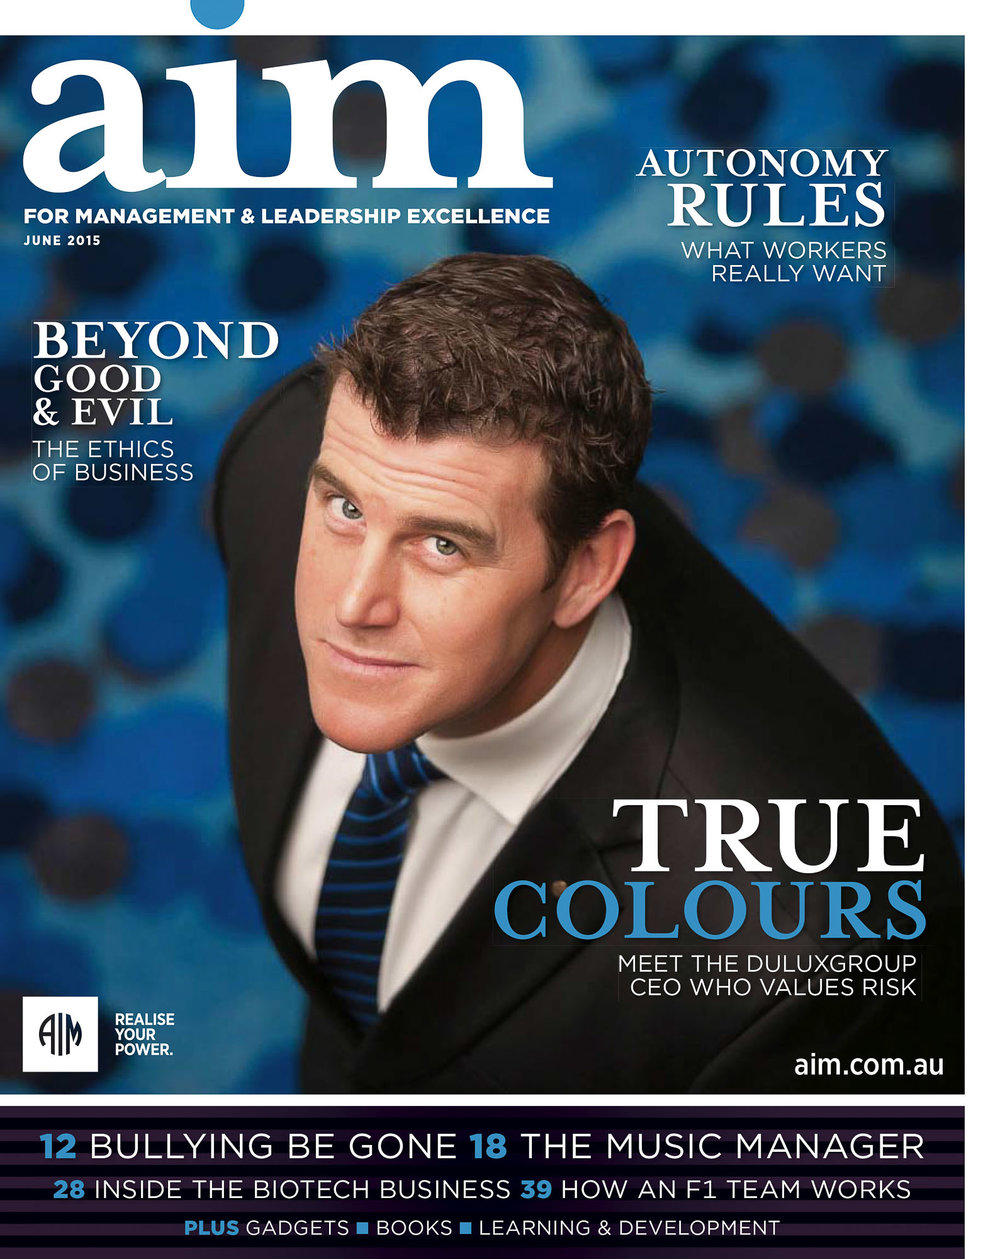 Aim Cover HSF.jpg